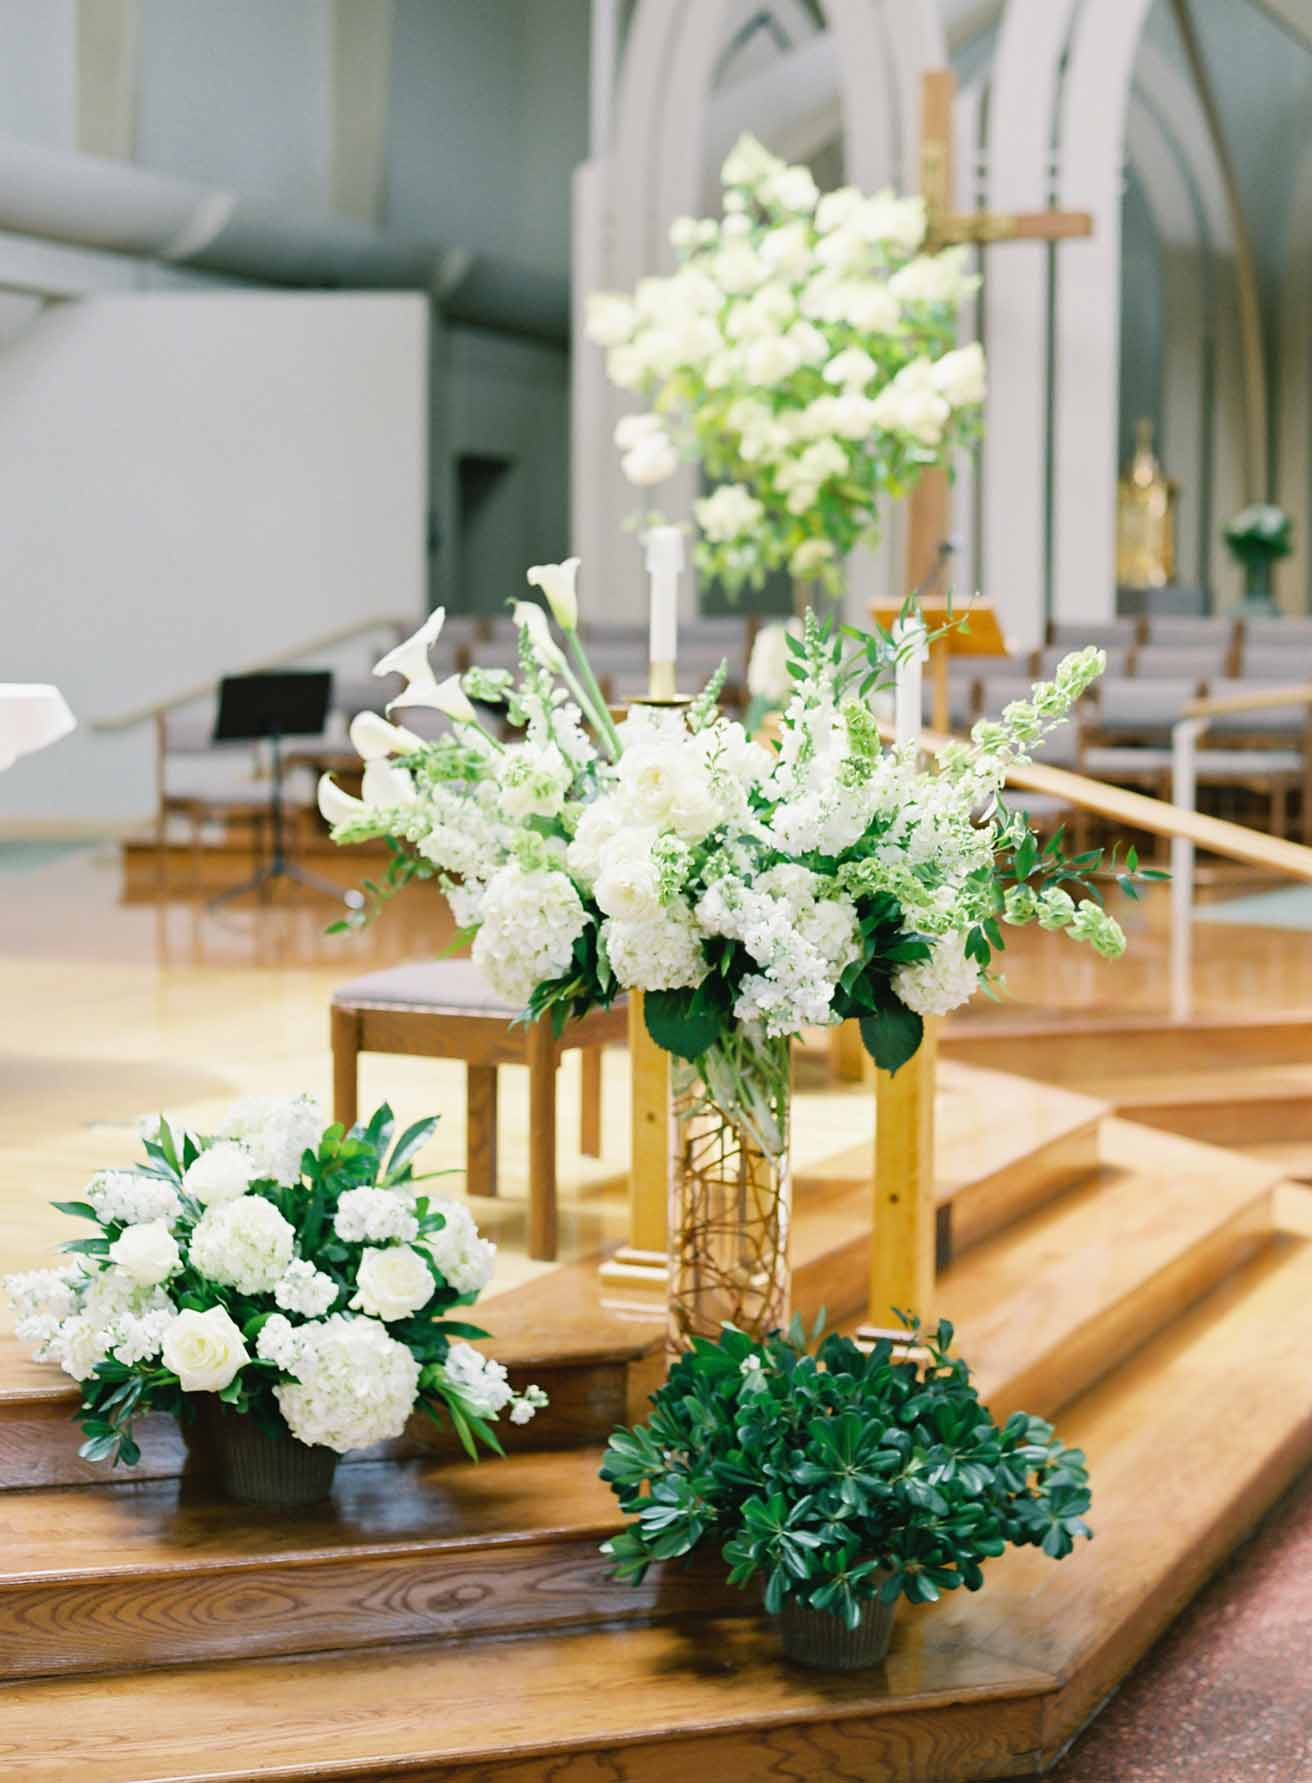 Altar flowers at wedding church: white hydrangea, bells of Ireland, white roses, and greenery